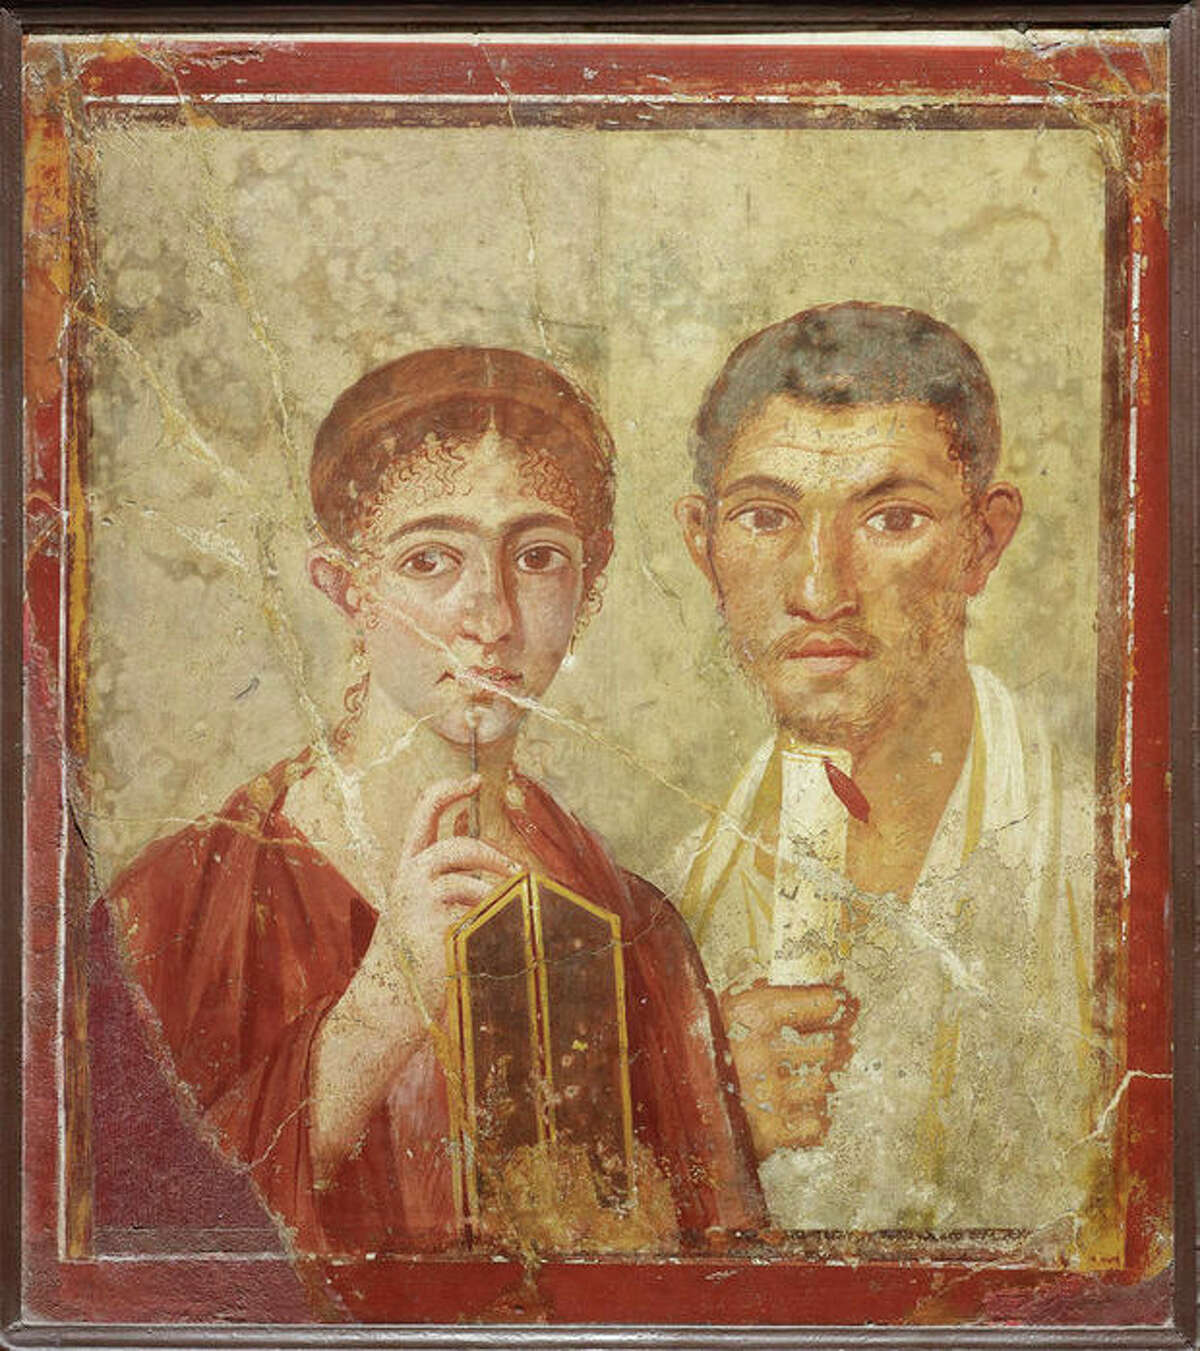 Undated handout photo issued by the British Musuem Thursday Sept. 20, 2012 of a wall painting of the baker Terentius Neo and his wife, from the House of Terentius Neo, Pompeii, AD 50-79. as dozens of objects recovered from the ruins of Roman cities Pompeii and Herculaneum will go on show outside Italy for the first time at a new exhibition at the museum. The two cities on the Bay of Naples were wiped out by the eruption of Mount Vesuvius in 79 AD. The show will feature objects found in their ruins including jewellery, carbonised food and a baby?'s crib that still rocks on its curved runners. The exhibition will run March 28 to Sept. 29, 2013. (AP Photo/The Trustees of the British Museum)